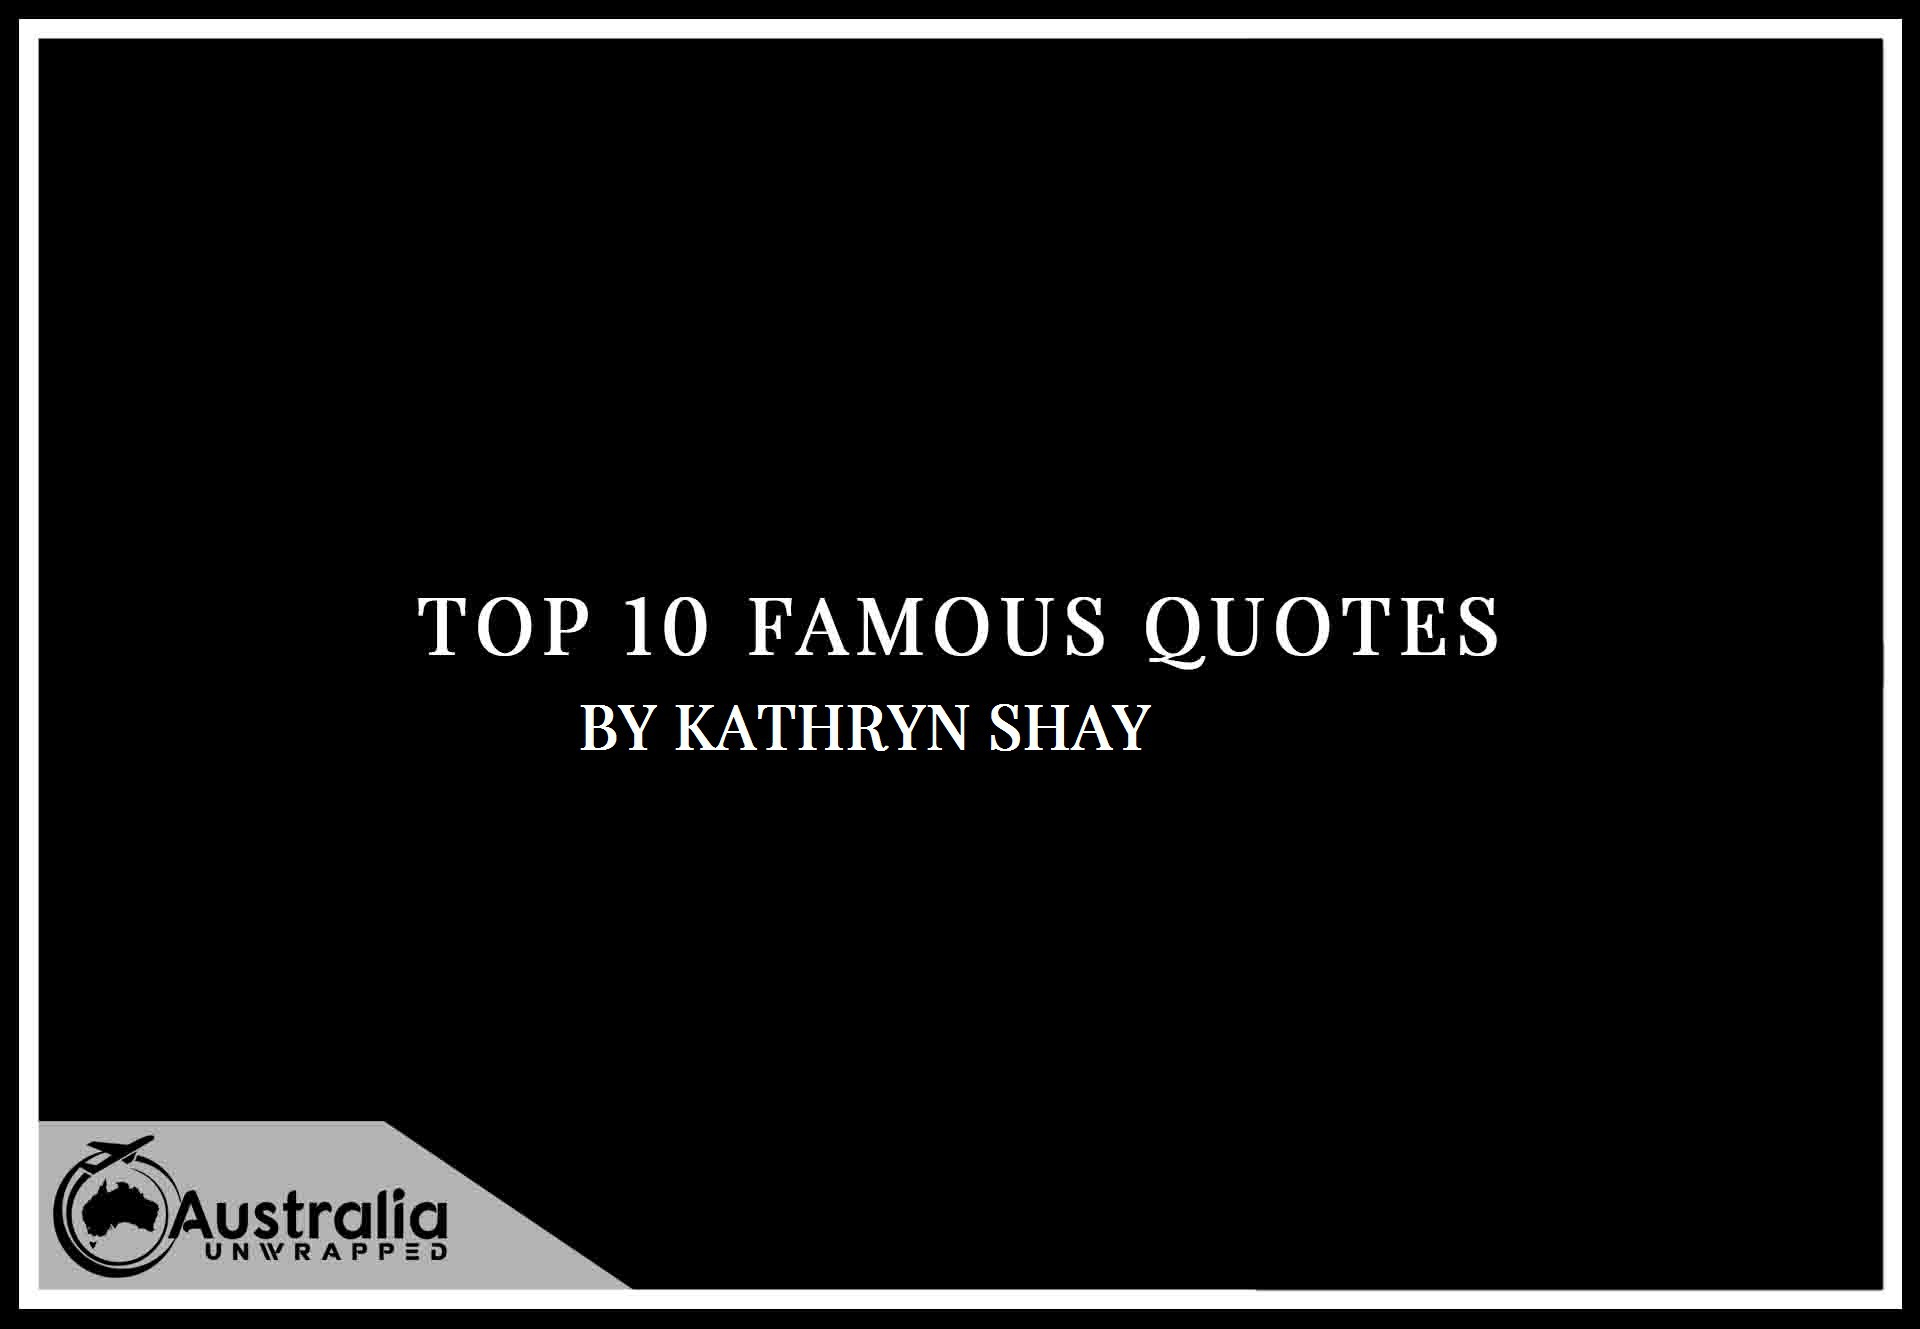 Kathryn Shay's Top 10 Popular and Famous Quotes